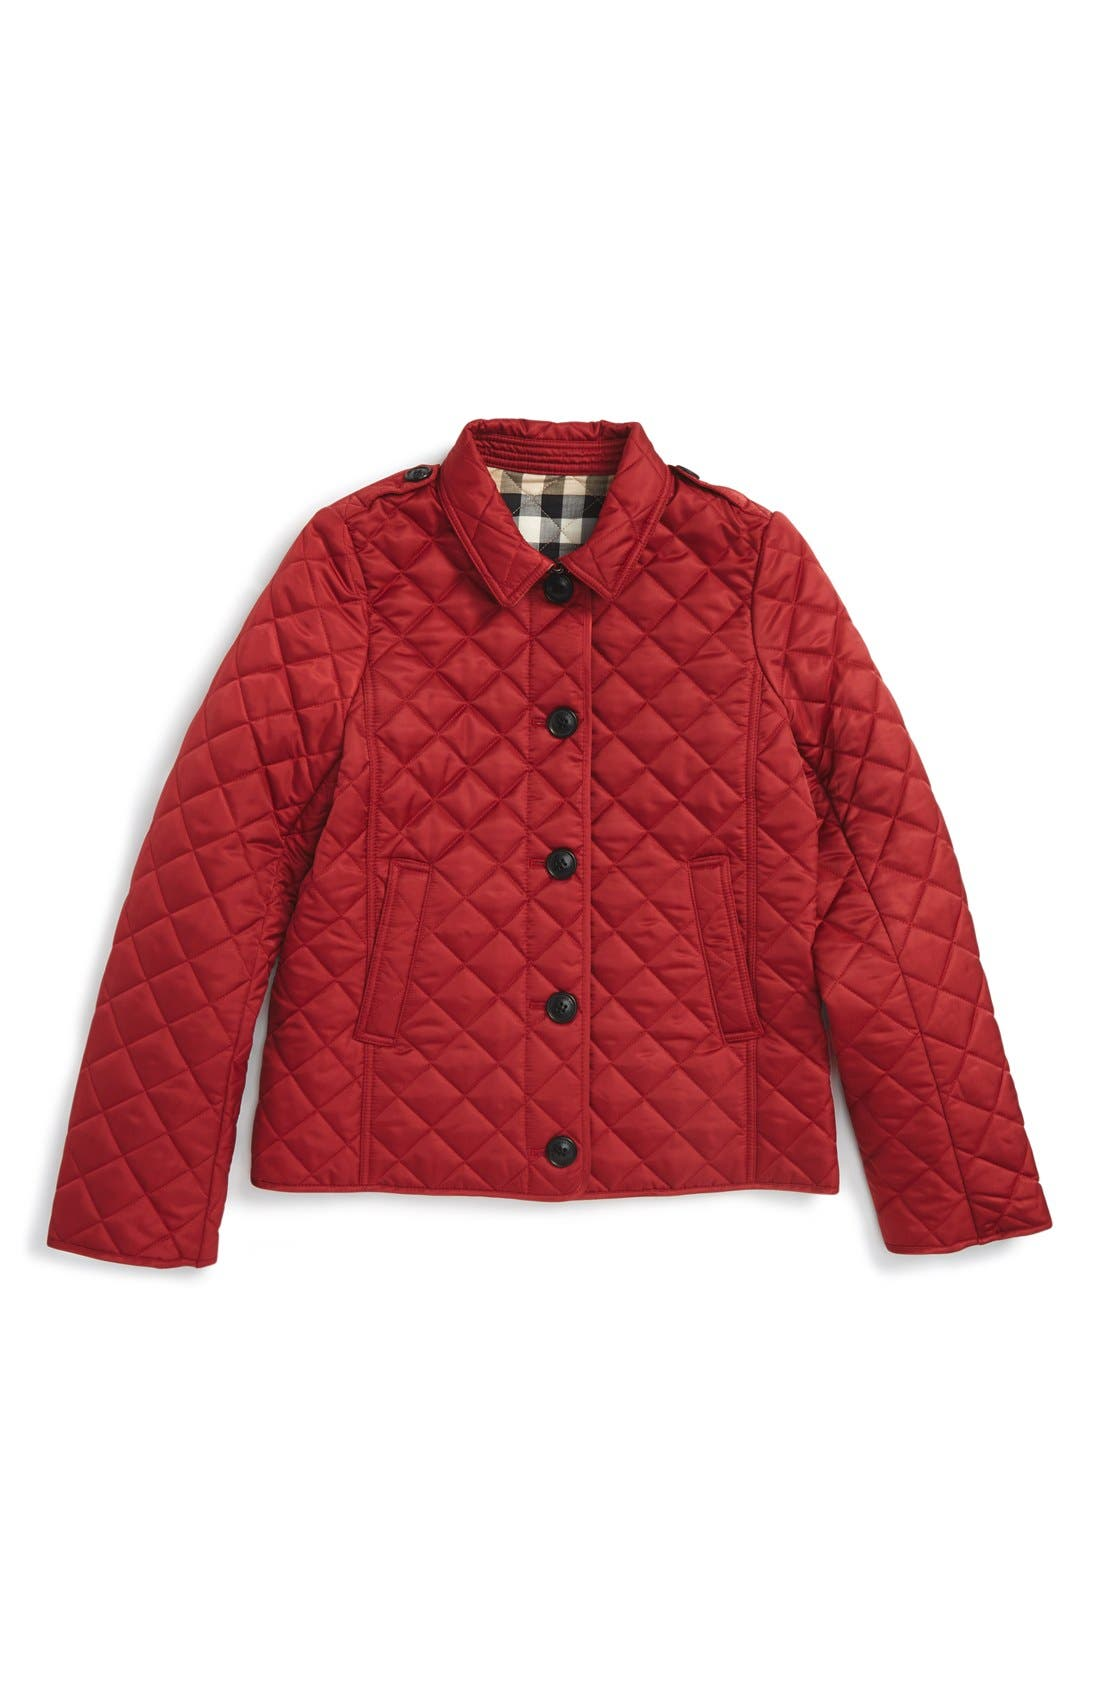 Alternate Image 1 Selected - Burberry 'Mini Ashurst' Quilted Jacket (Little Girls & Big Girls)